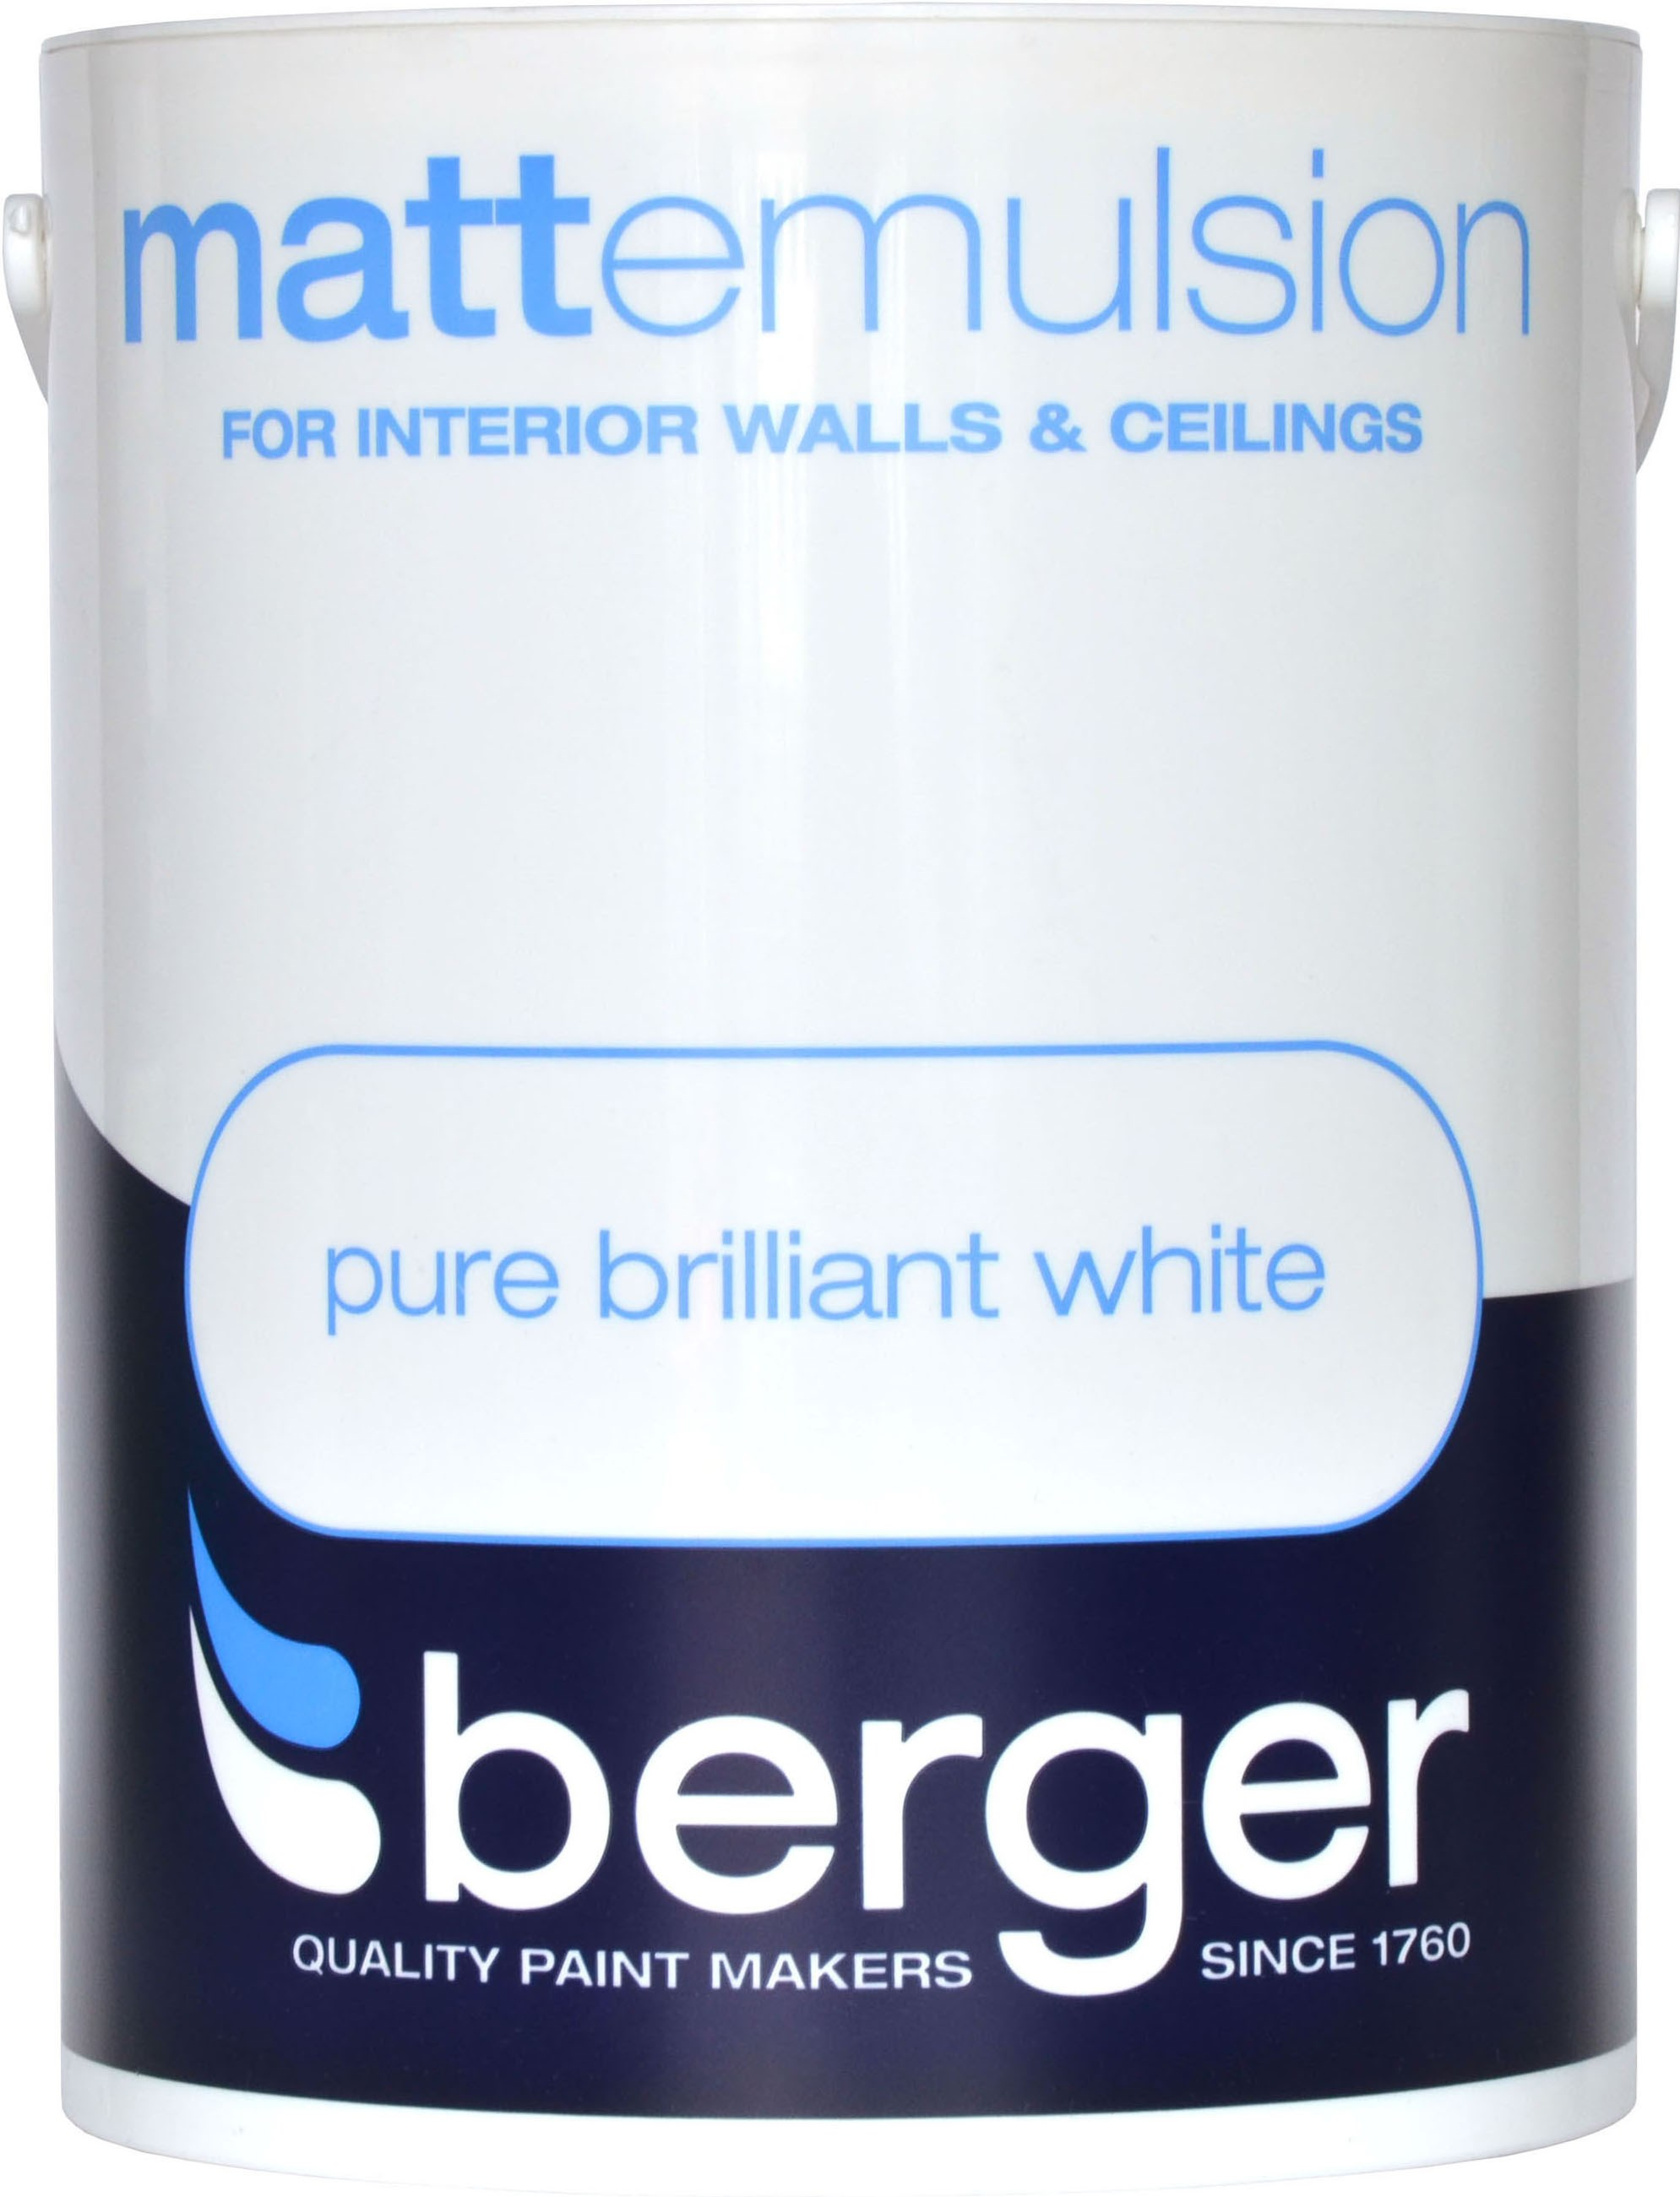 Berger Matt Emulsion Brilliant White Paint 5 Litre